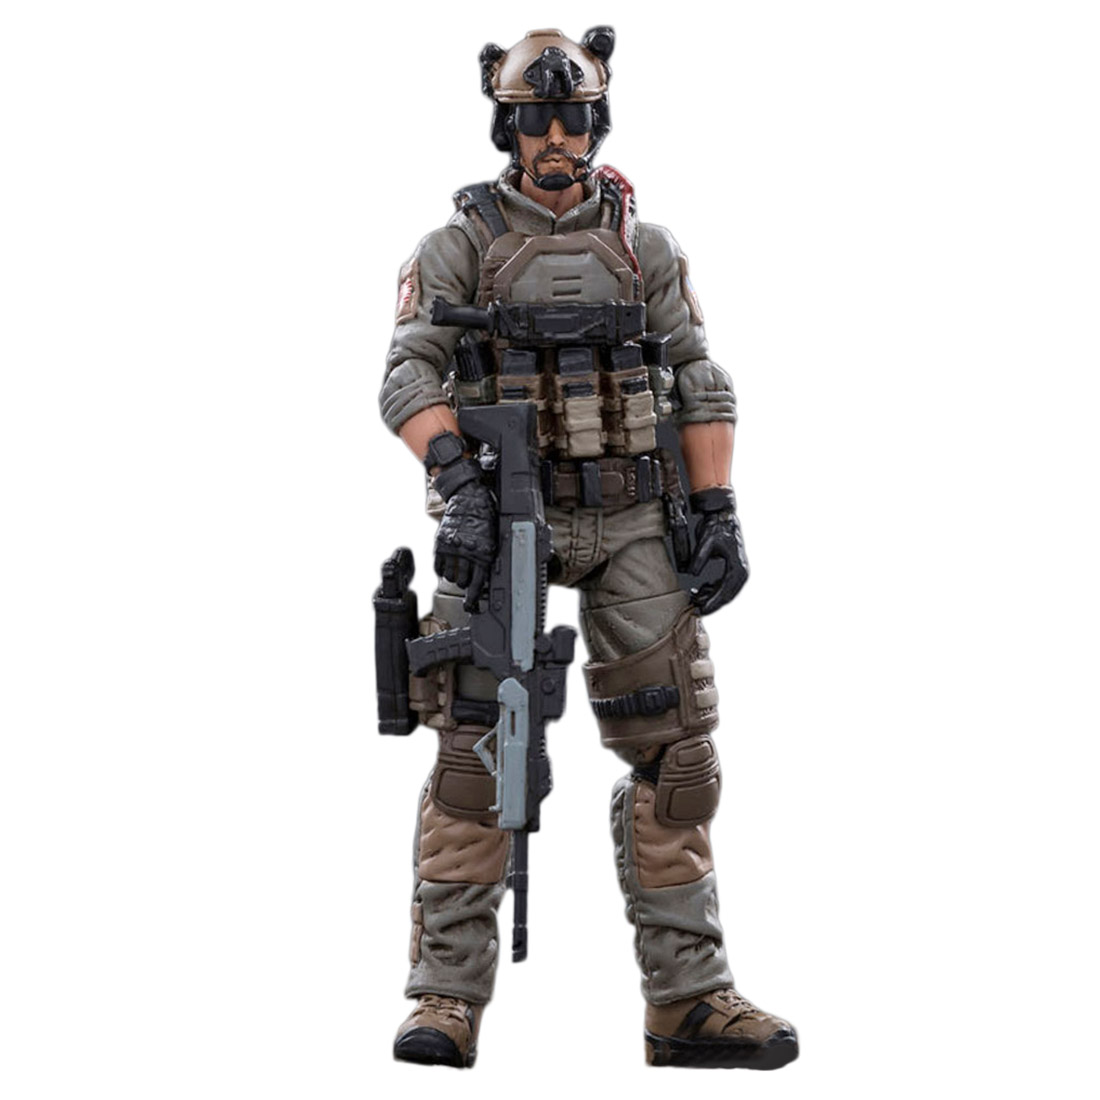 1:18 10.5cm Removable Action Figure Soldier Model Collection With High Degree Of Reduction - Navy Seals Special Troops Soldier F